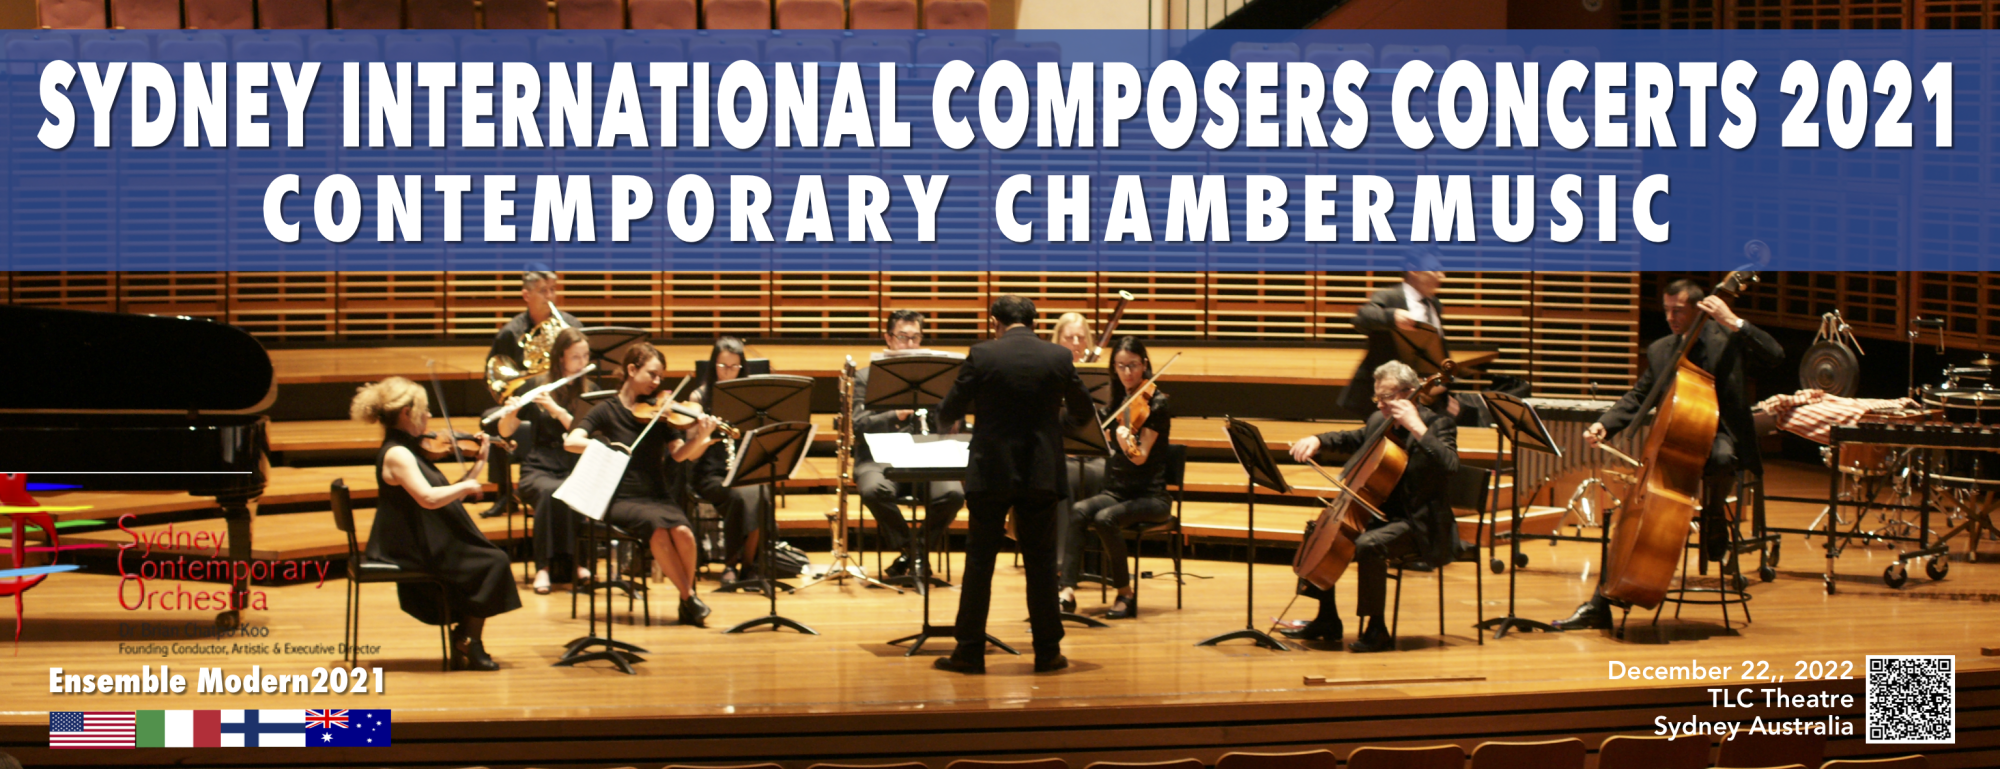 Contemporary Chamber Music 2022 (SCOC No.15)